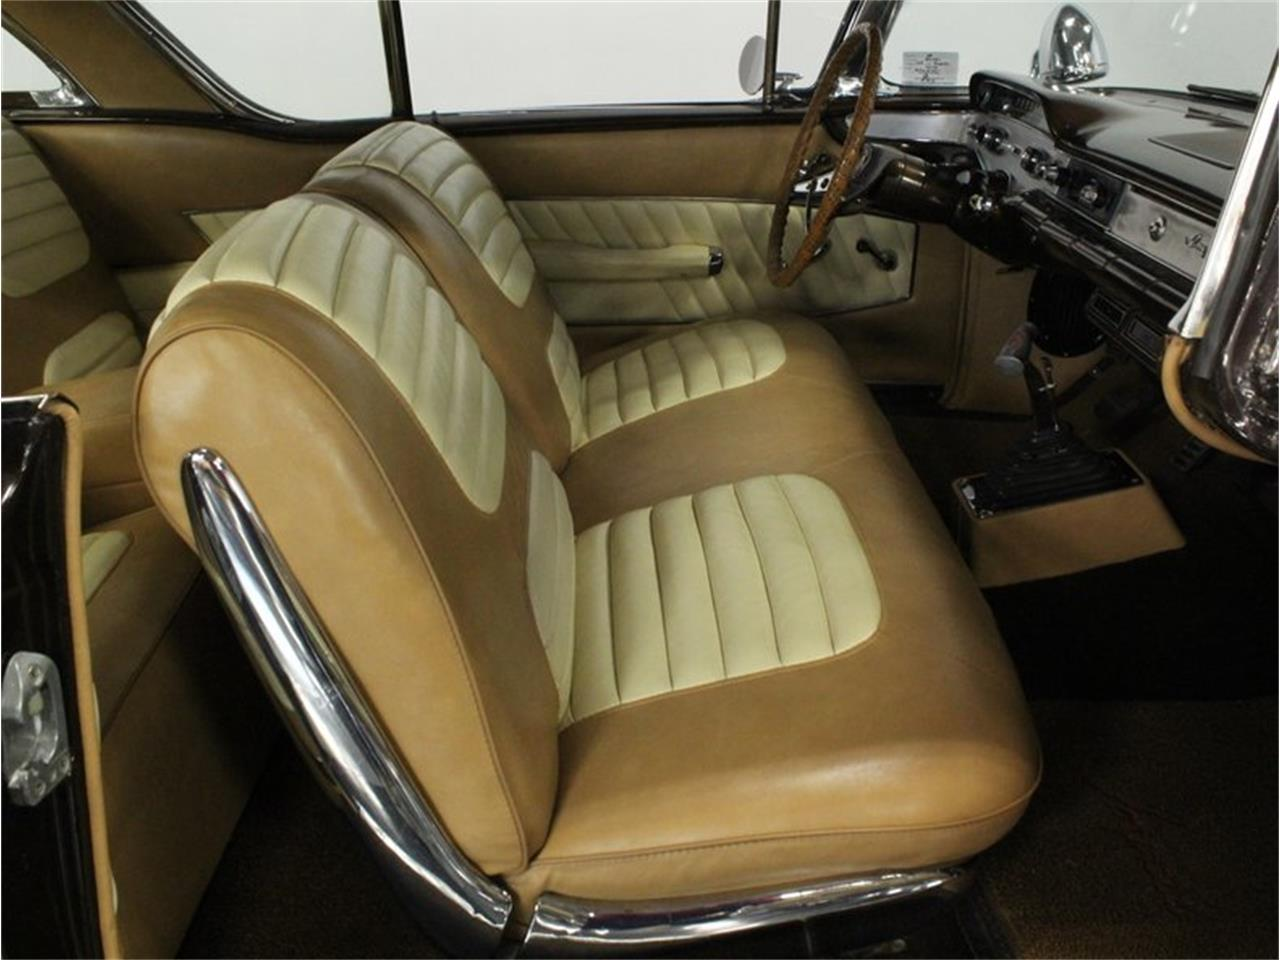 Large Picture of 1958 Chevrolet Impala located in Texas - $44,995.00 Offered by Streetside Classics - Dallas / Fort Worth - HX8B